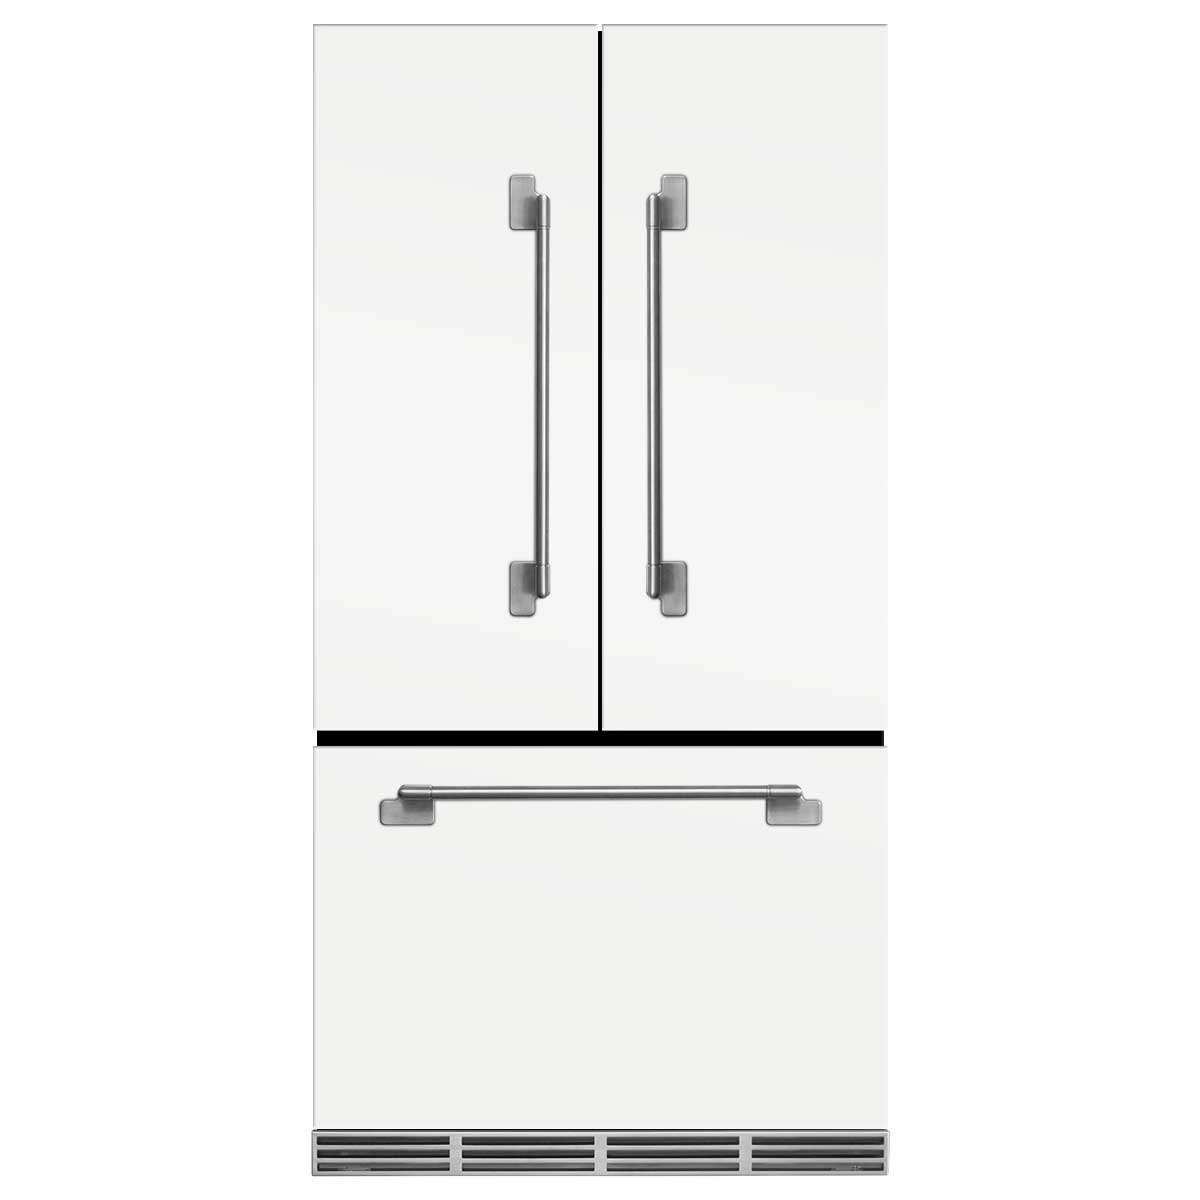 Marvel Elise French Door Counter-Depth Refrigerator Marvel Elise French Door Counter-Depth Refrigerator Stainless Steel